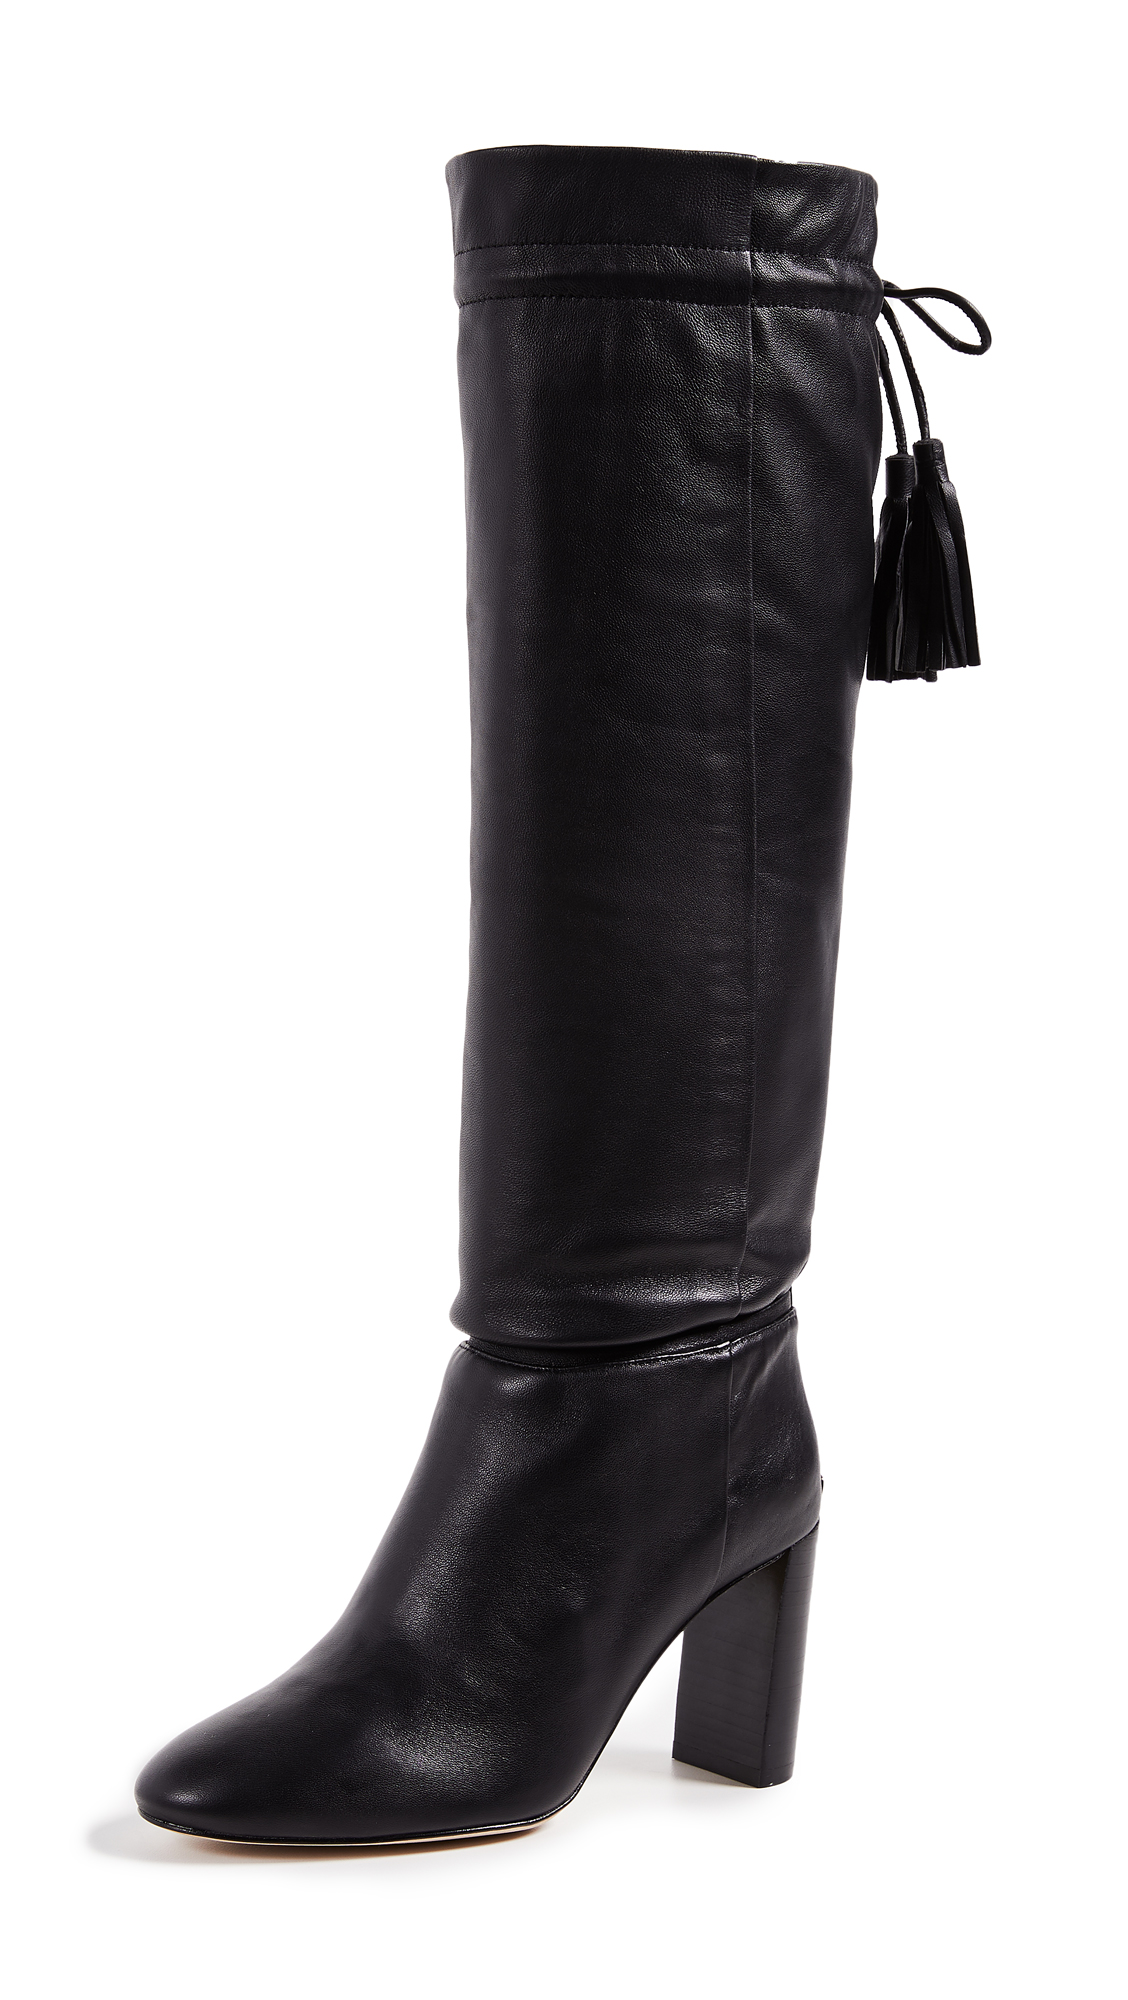 Kate Spade New York Hazel Boots - Black